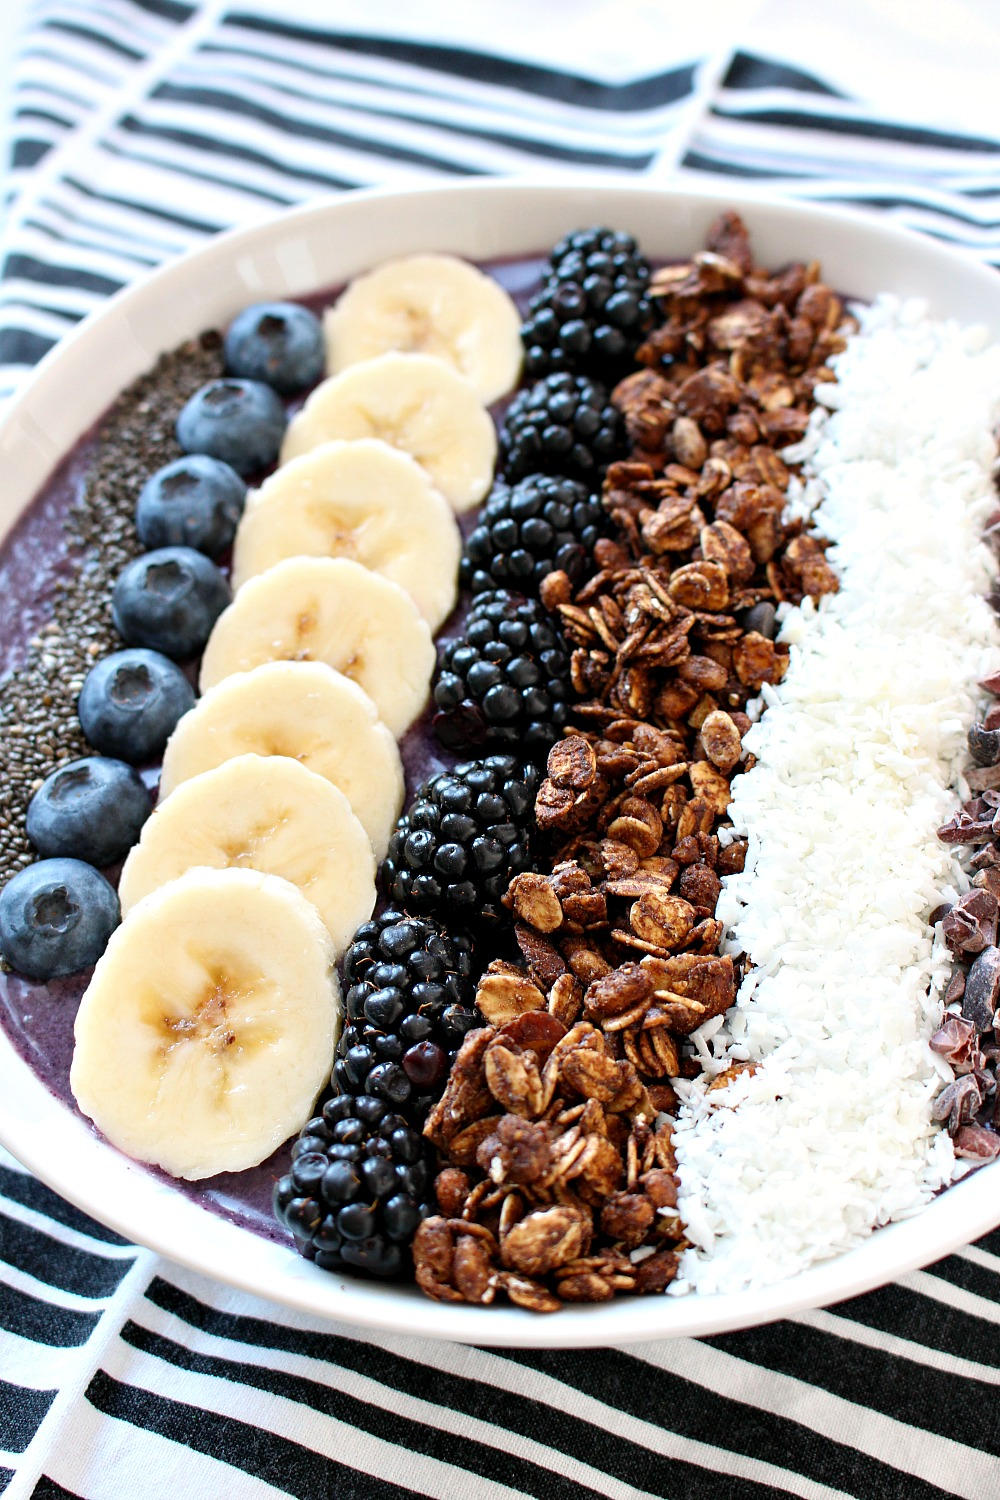 Healthy Smoothie Bowl Recipes Ideas